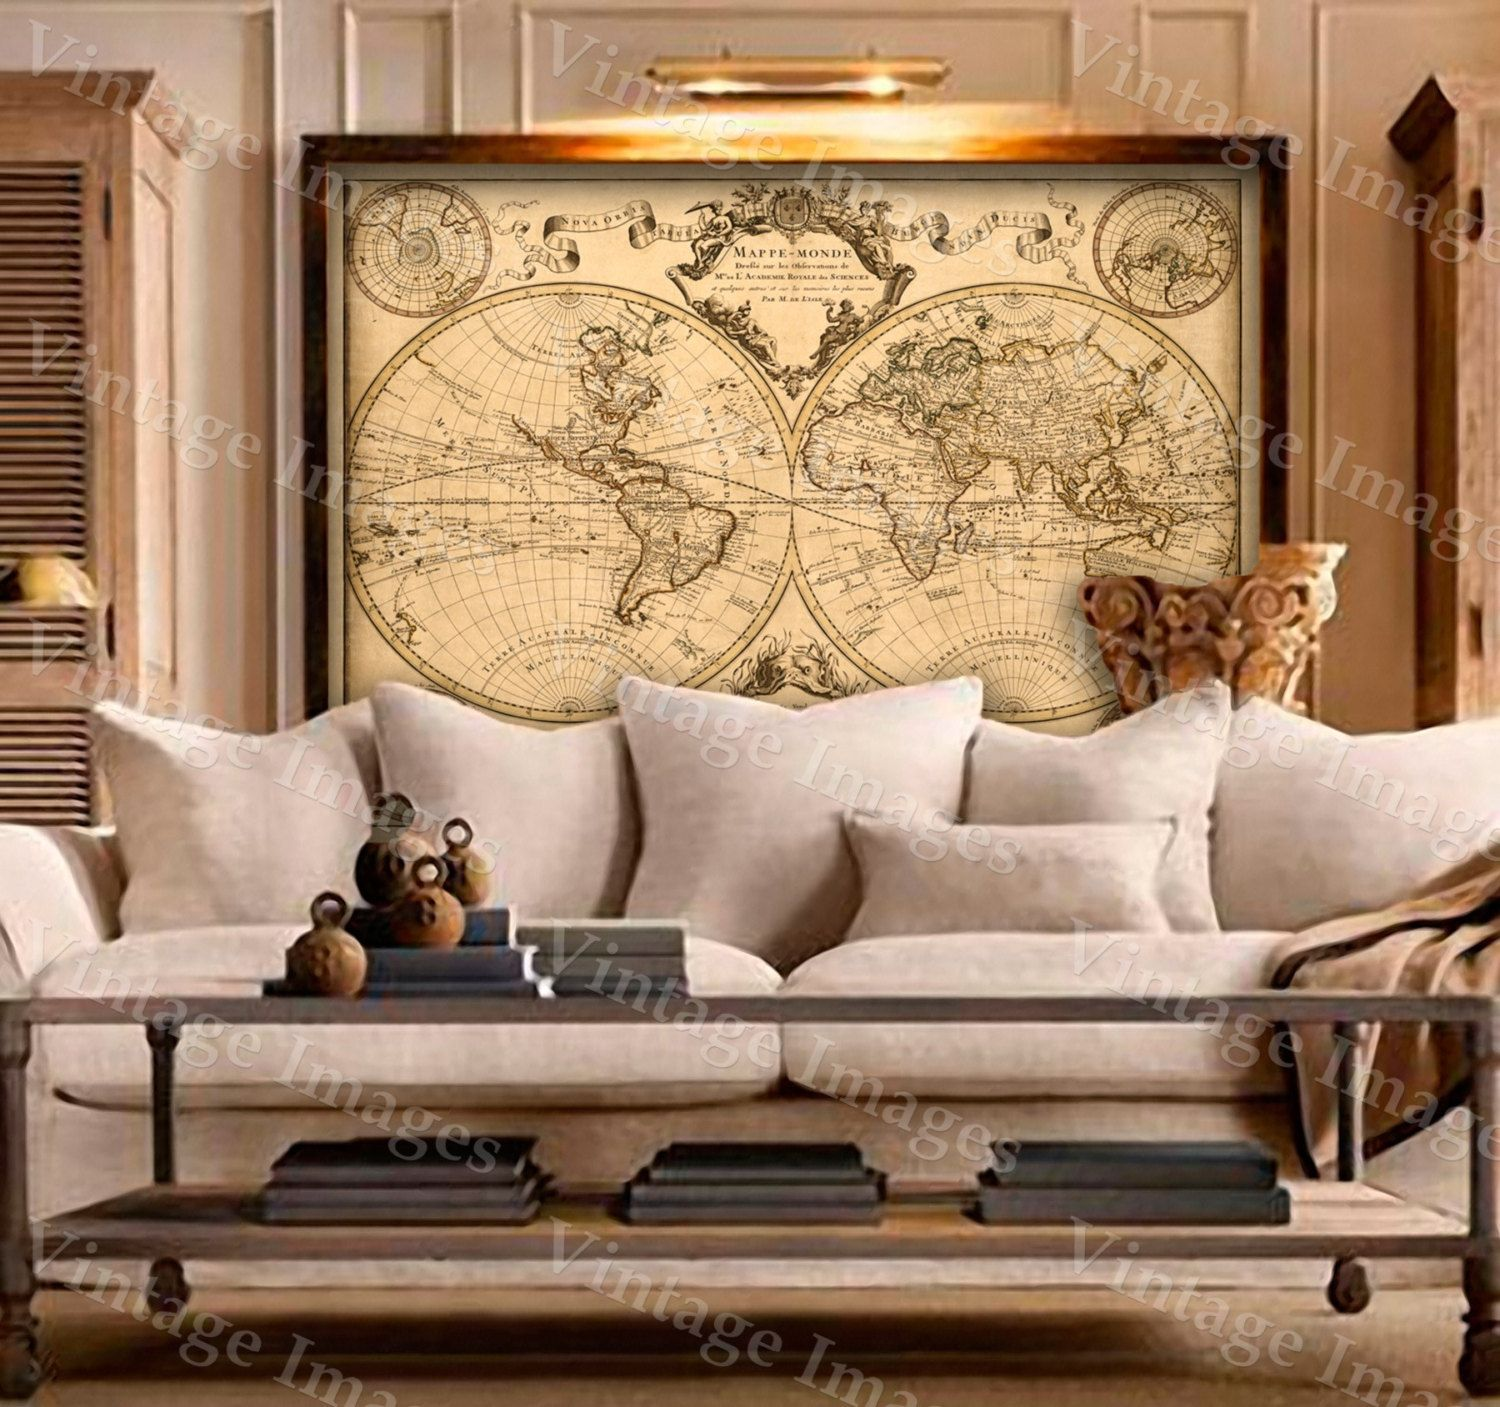 L Isle s 1720 Old World Map Historic Map Antique Restoration